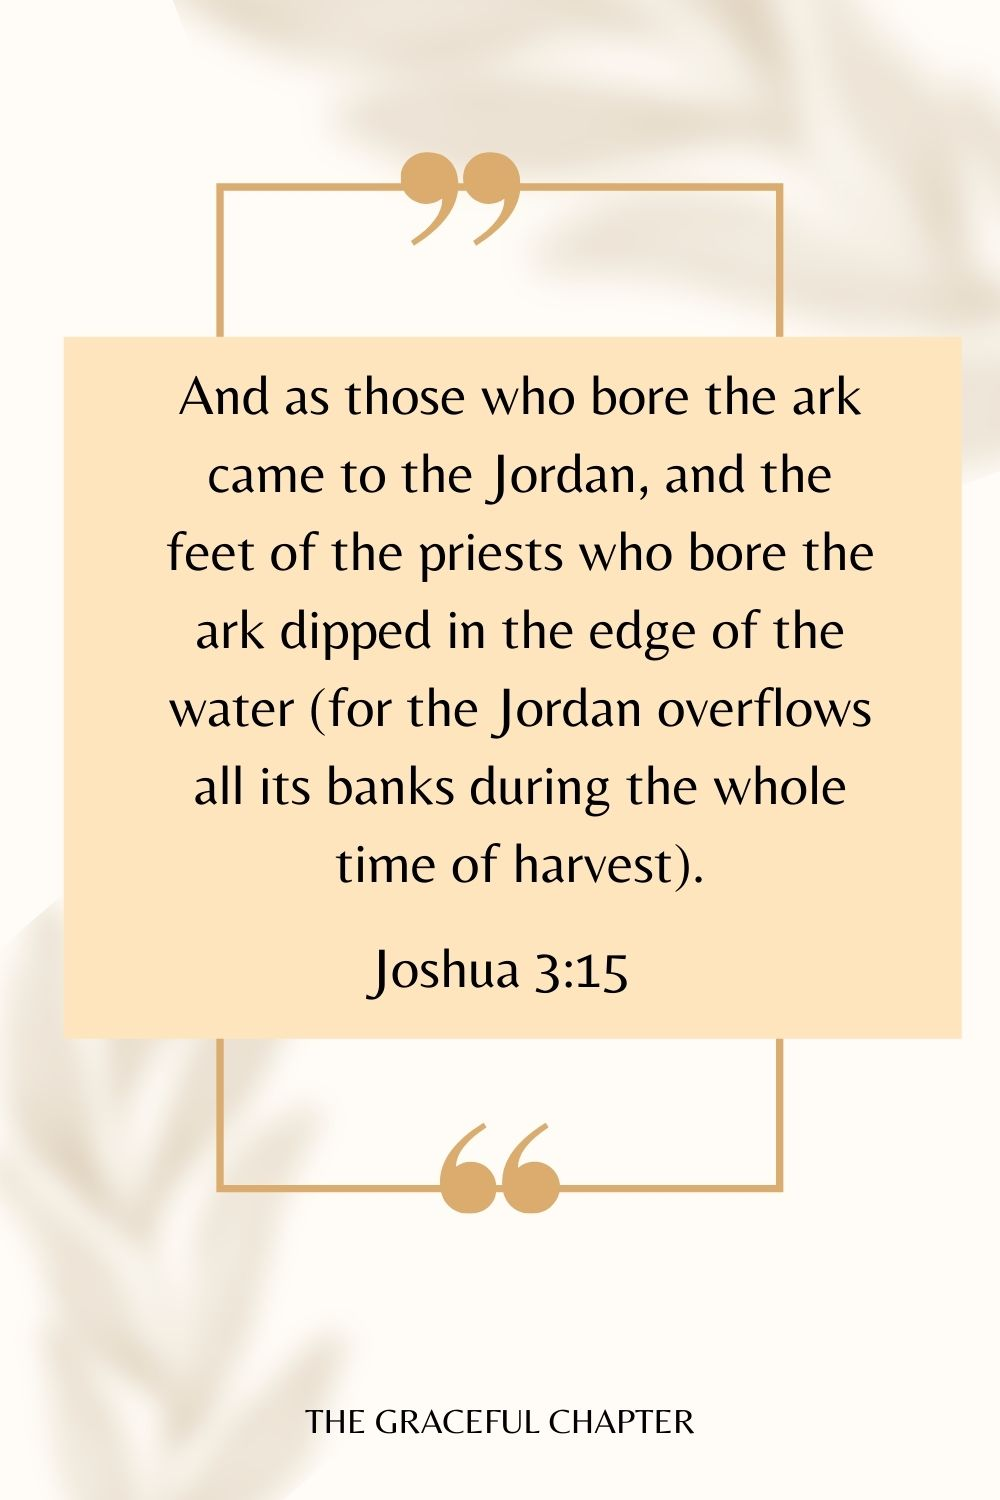 And as those who bore the ark came to the Jordan, and the feet of the priests who bore the ark dipped in the edge of the water (for the Jordan overflows all its banks during the whole time of harvest). Joshua 3:15